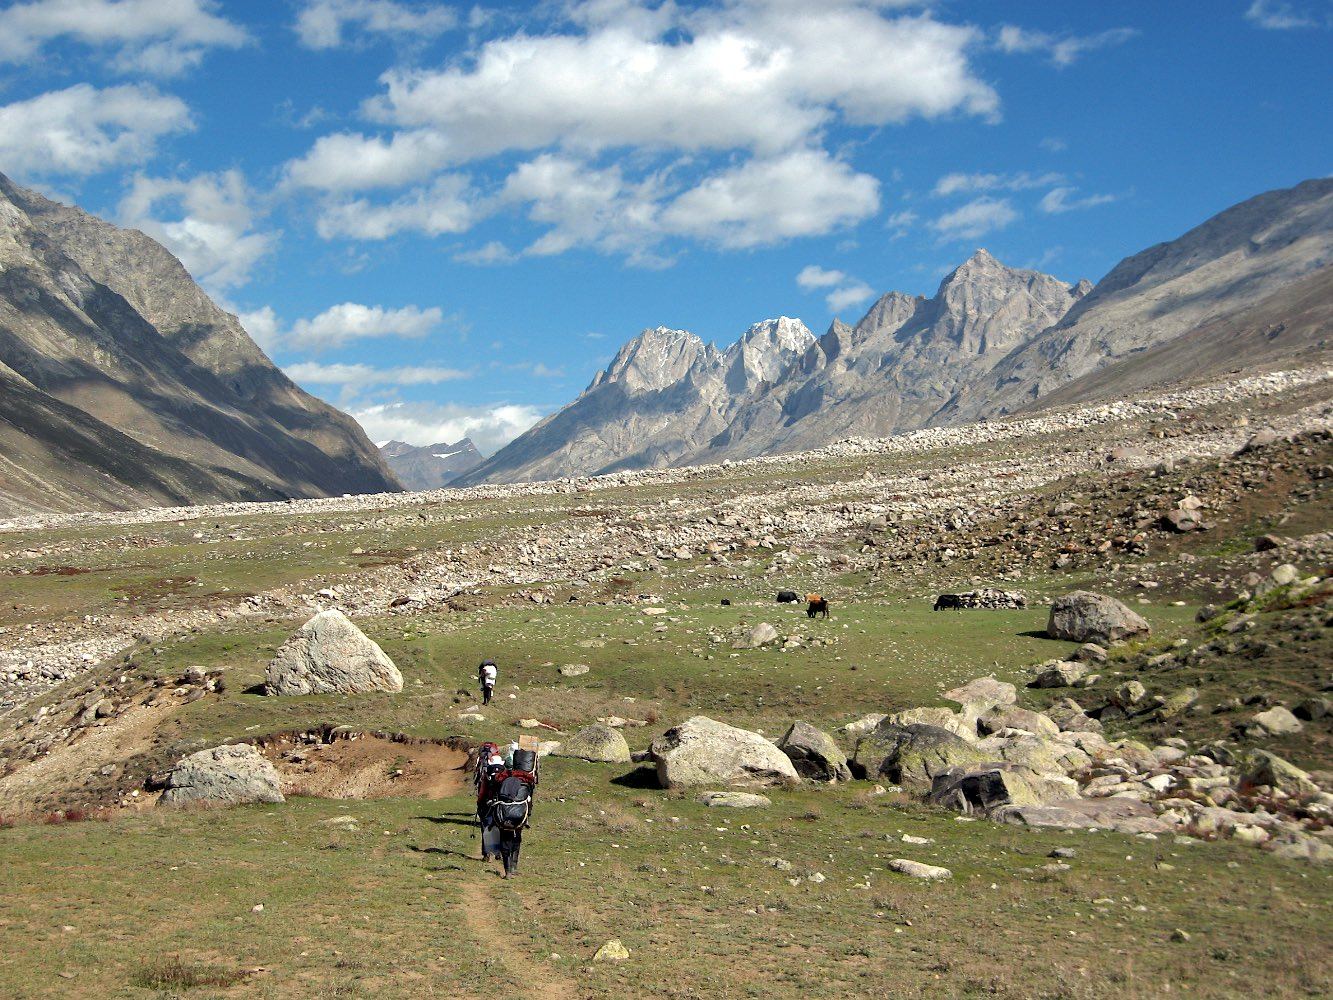 Hiking up the Miyar Valley with porters